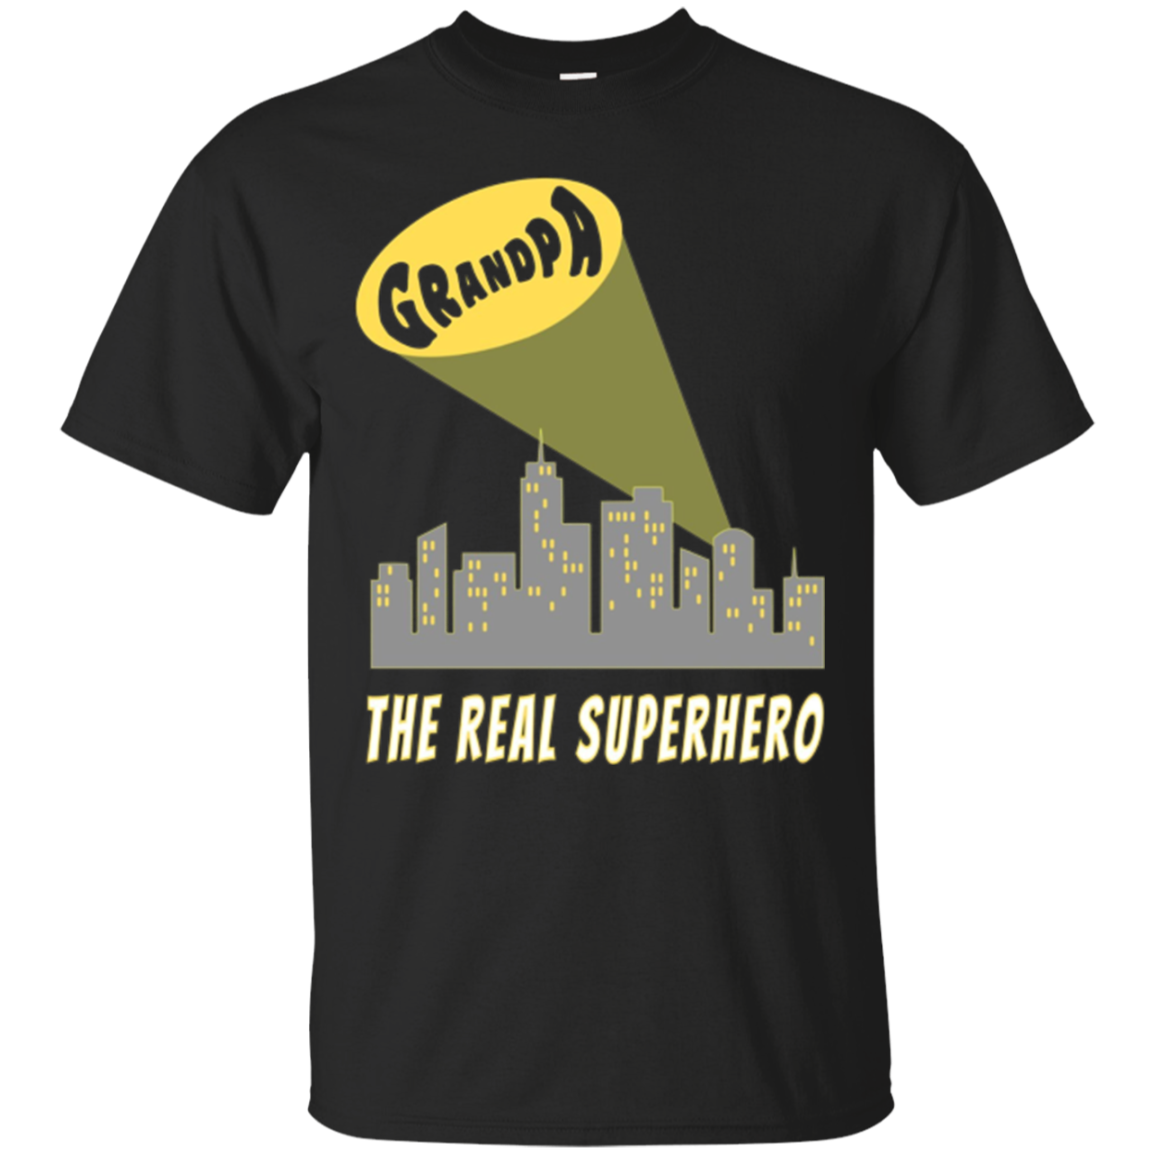 Grandpa - The Real Superhero T-Shirt